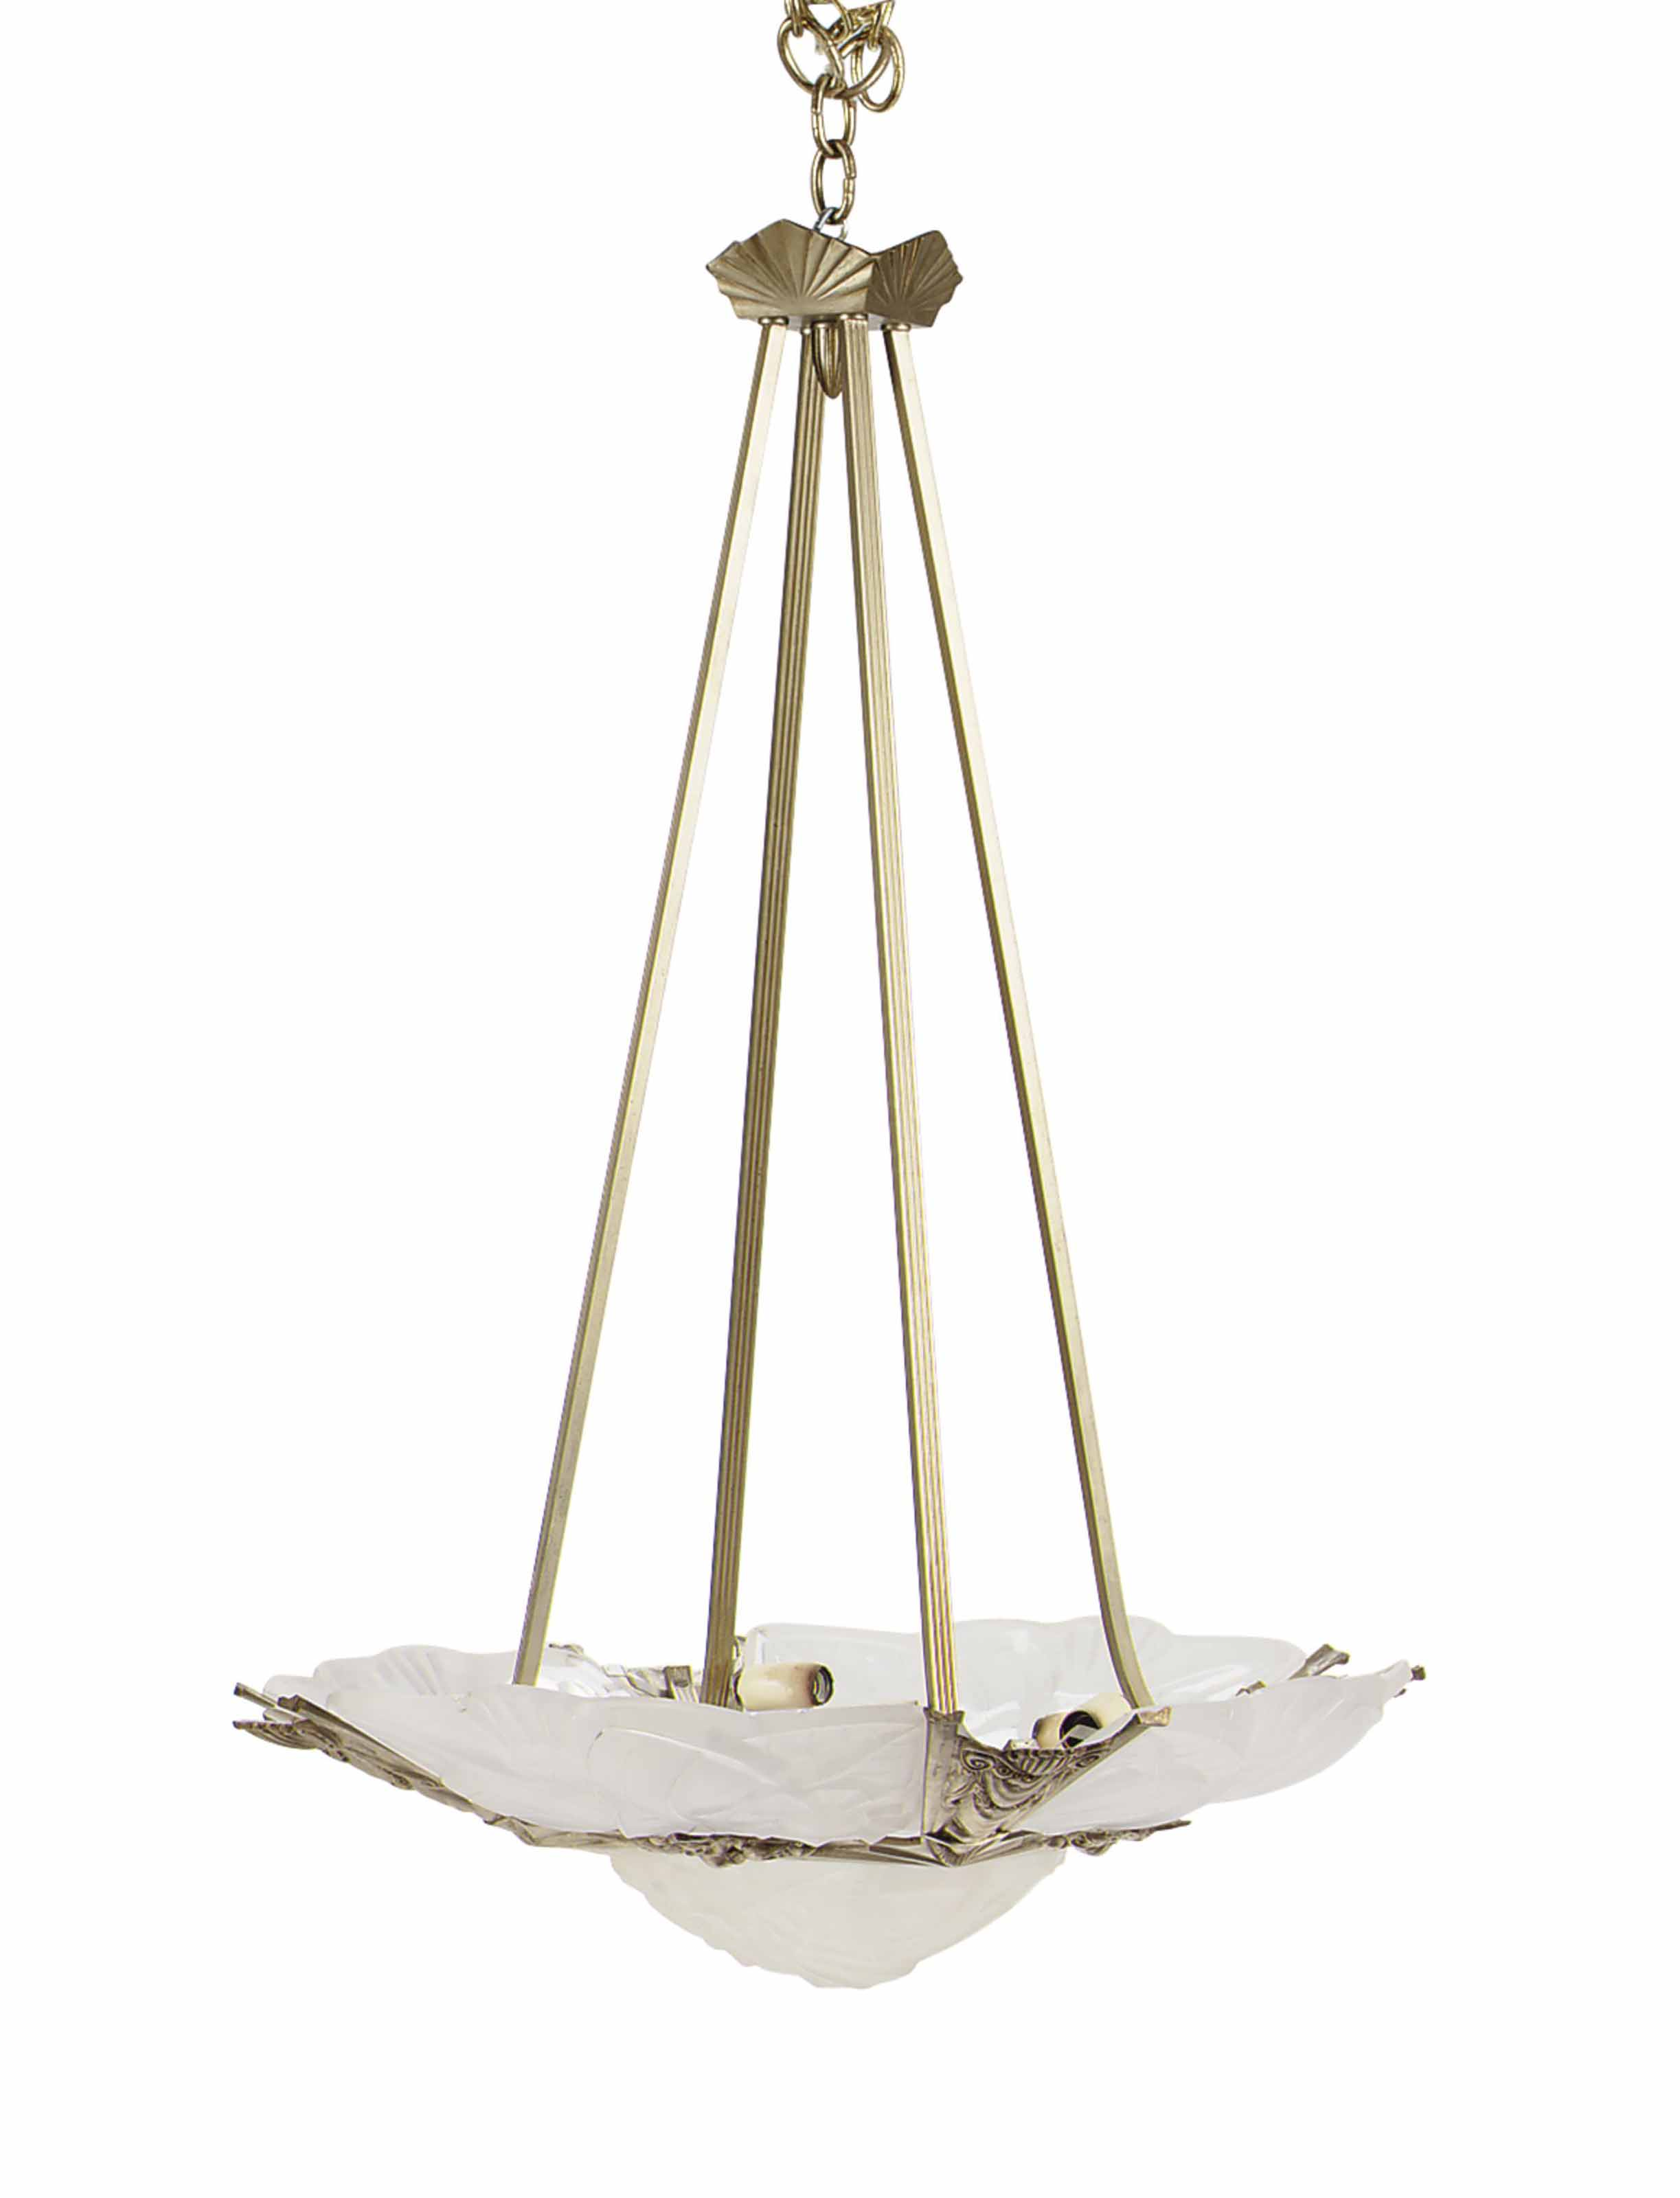 A FRENCH ART DECO WHITE METAL AND FROSTED-GLASS SIX-LIGHT CHANDELIER,